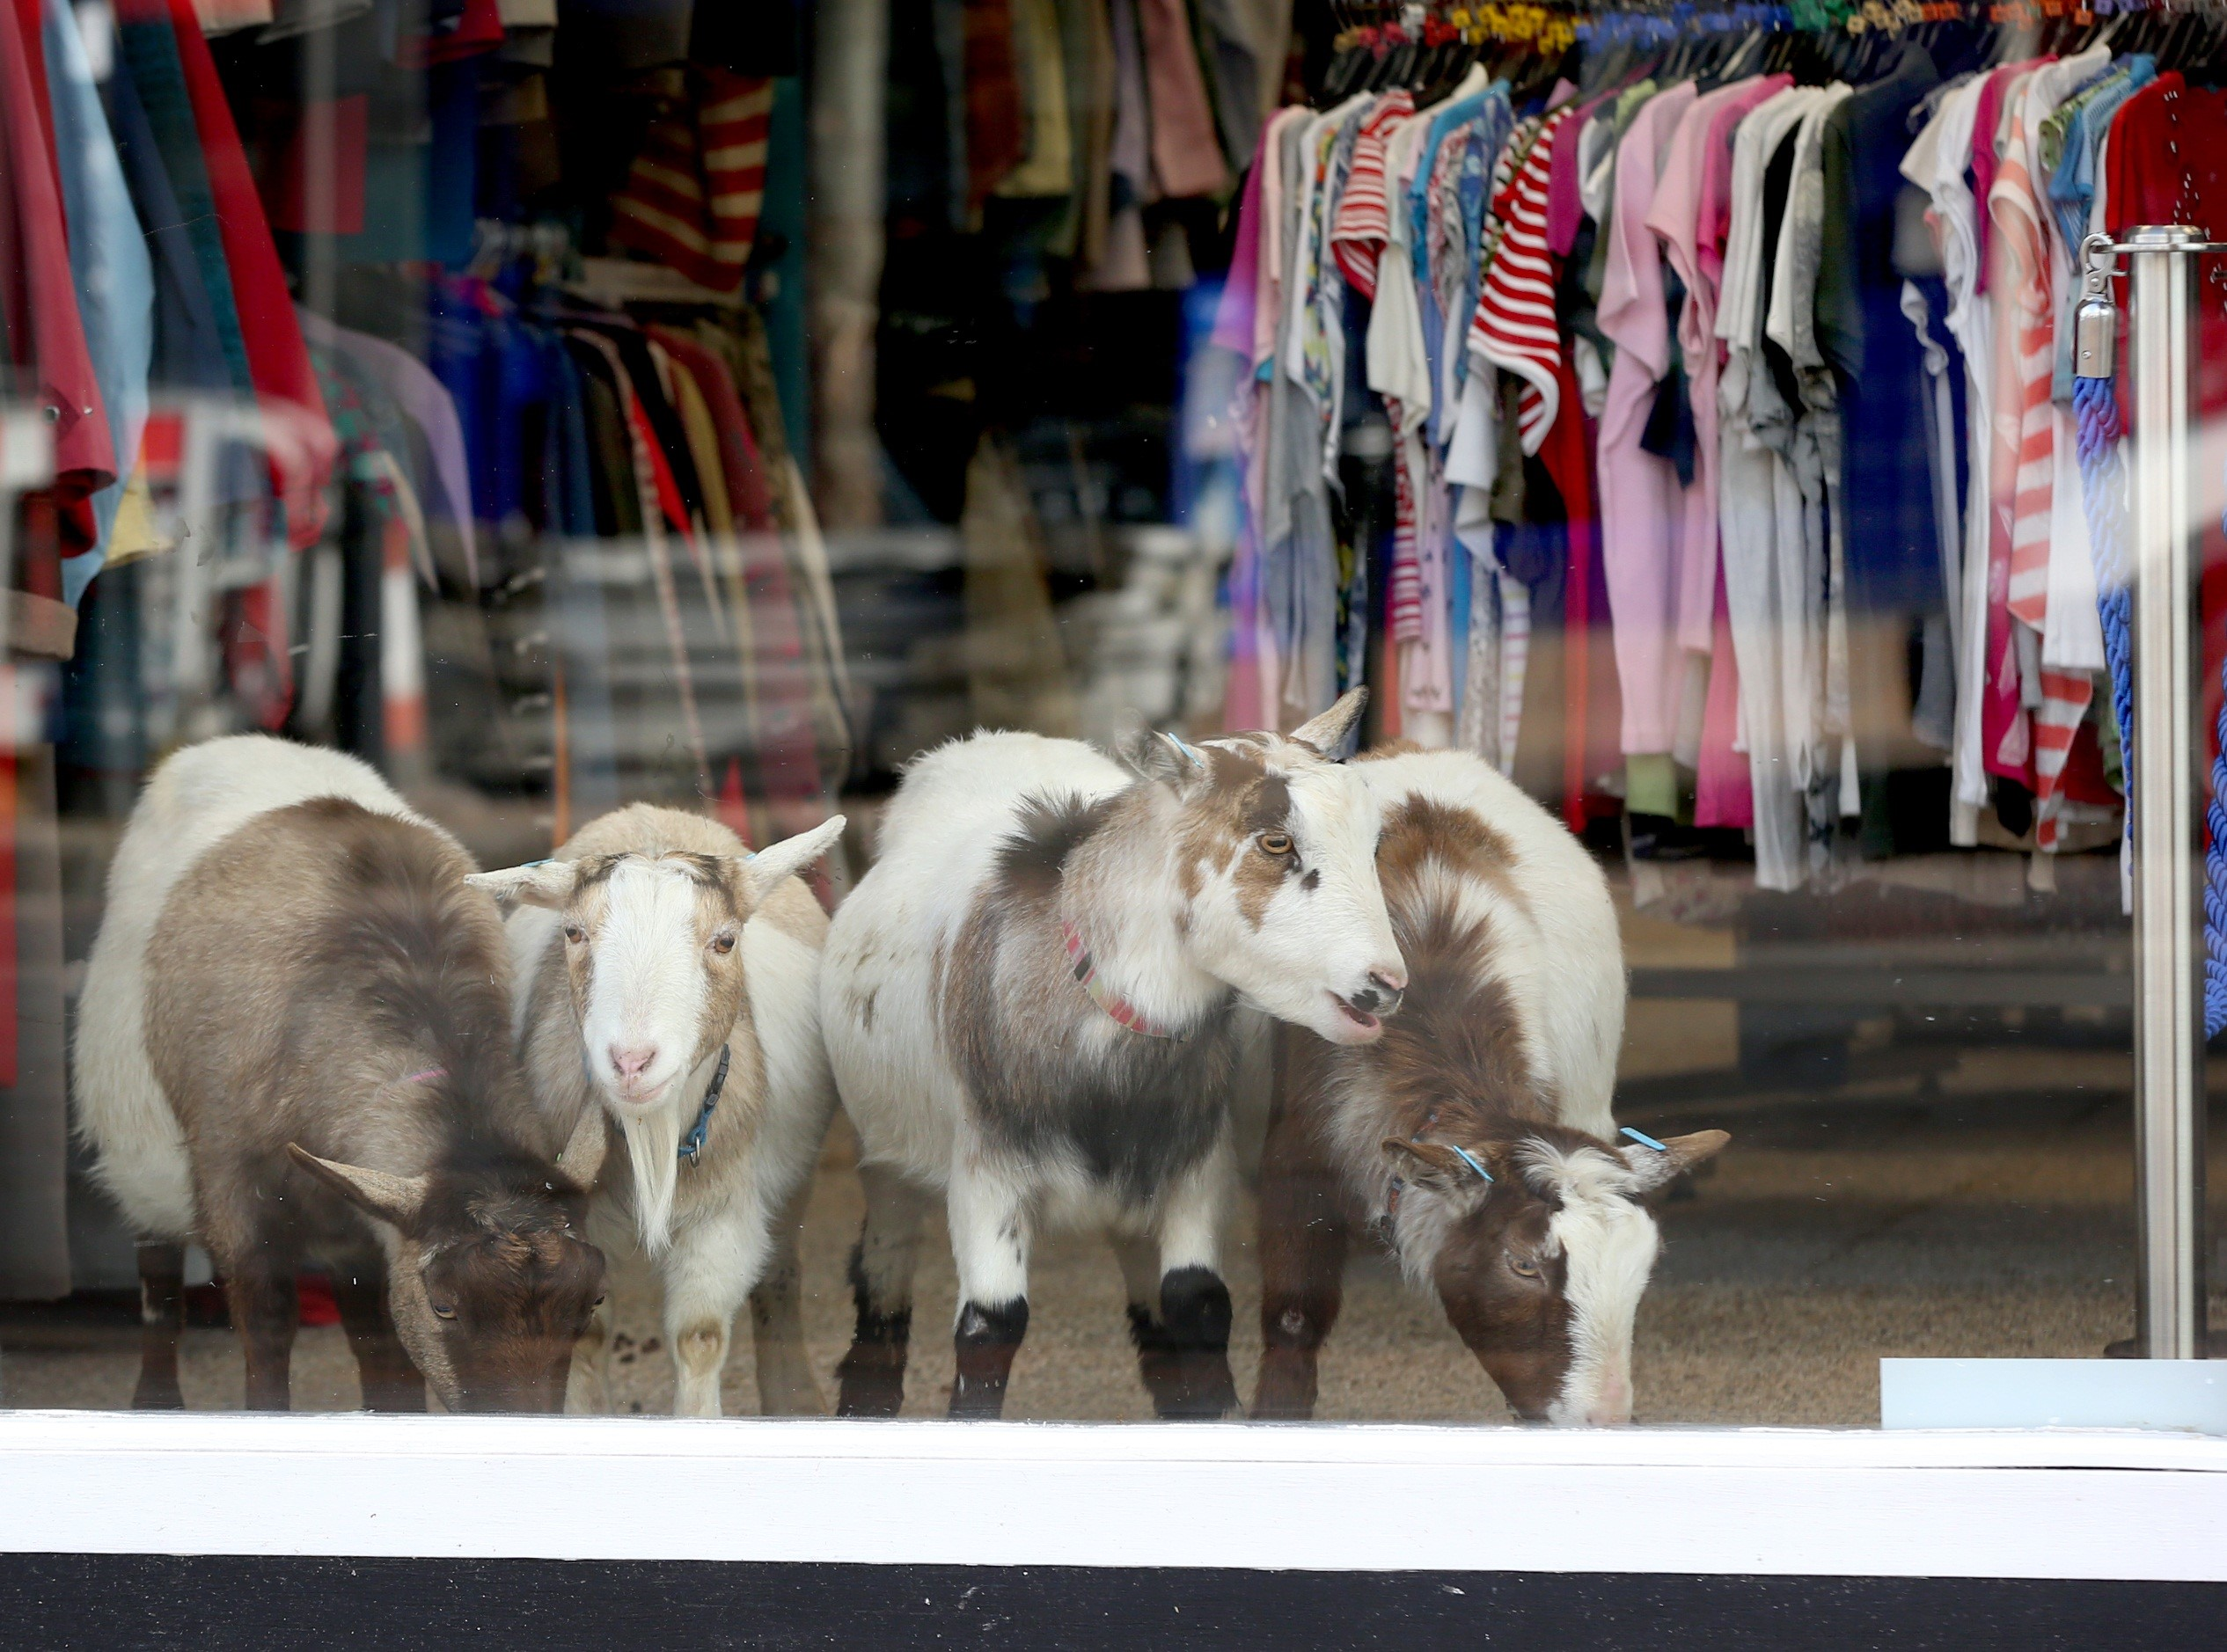 Goats stand in a Age Uk charity shop.